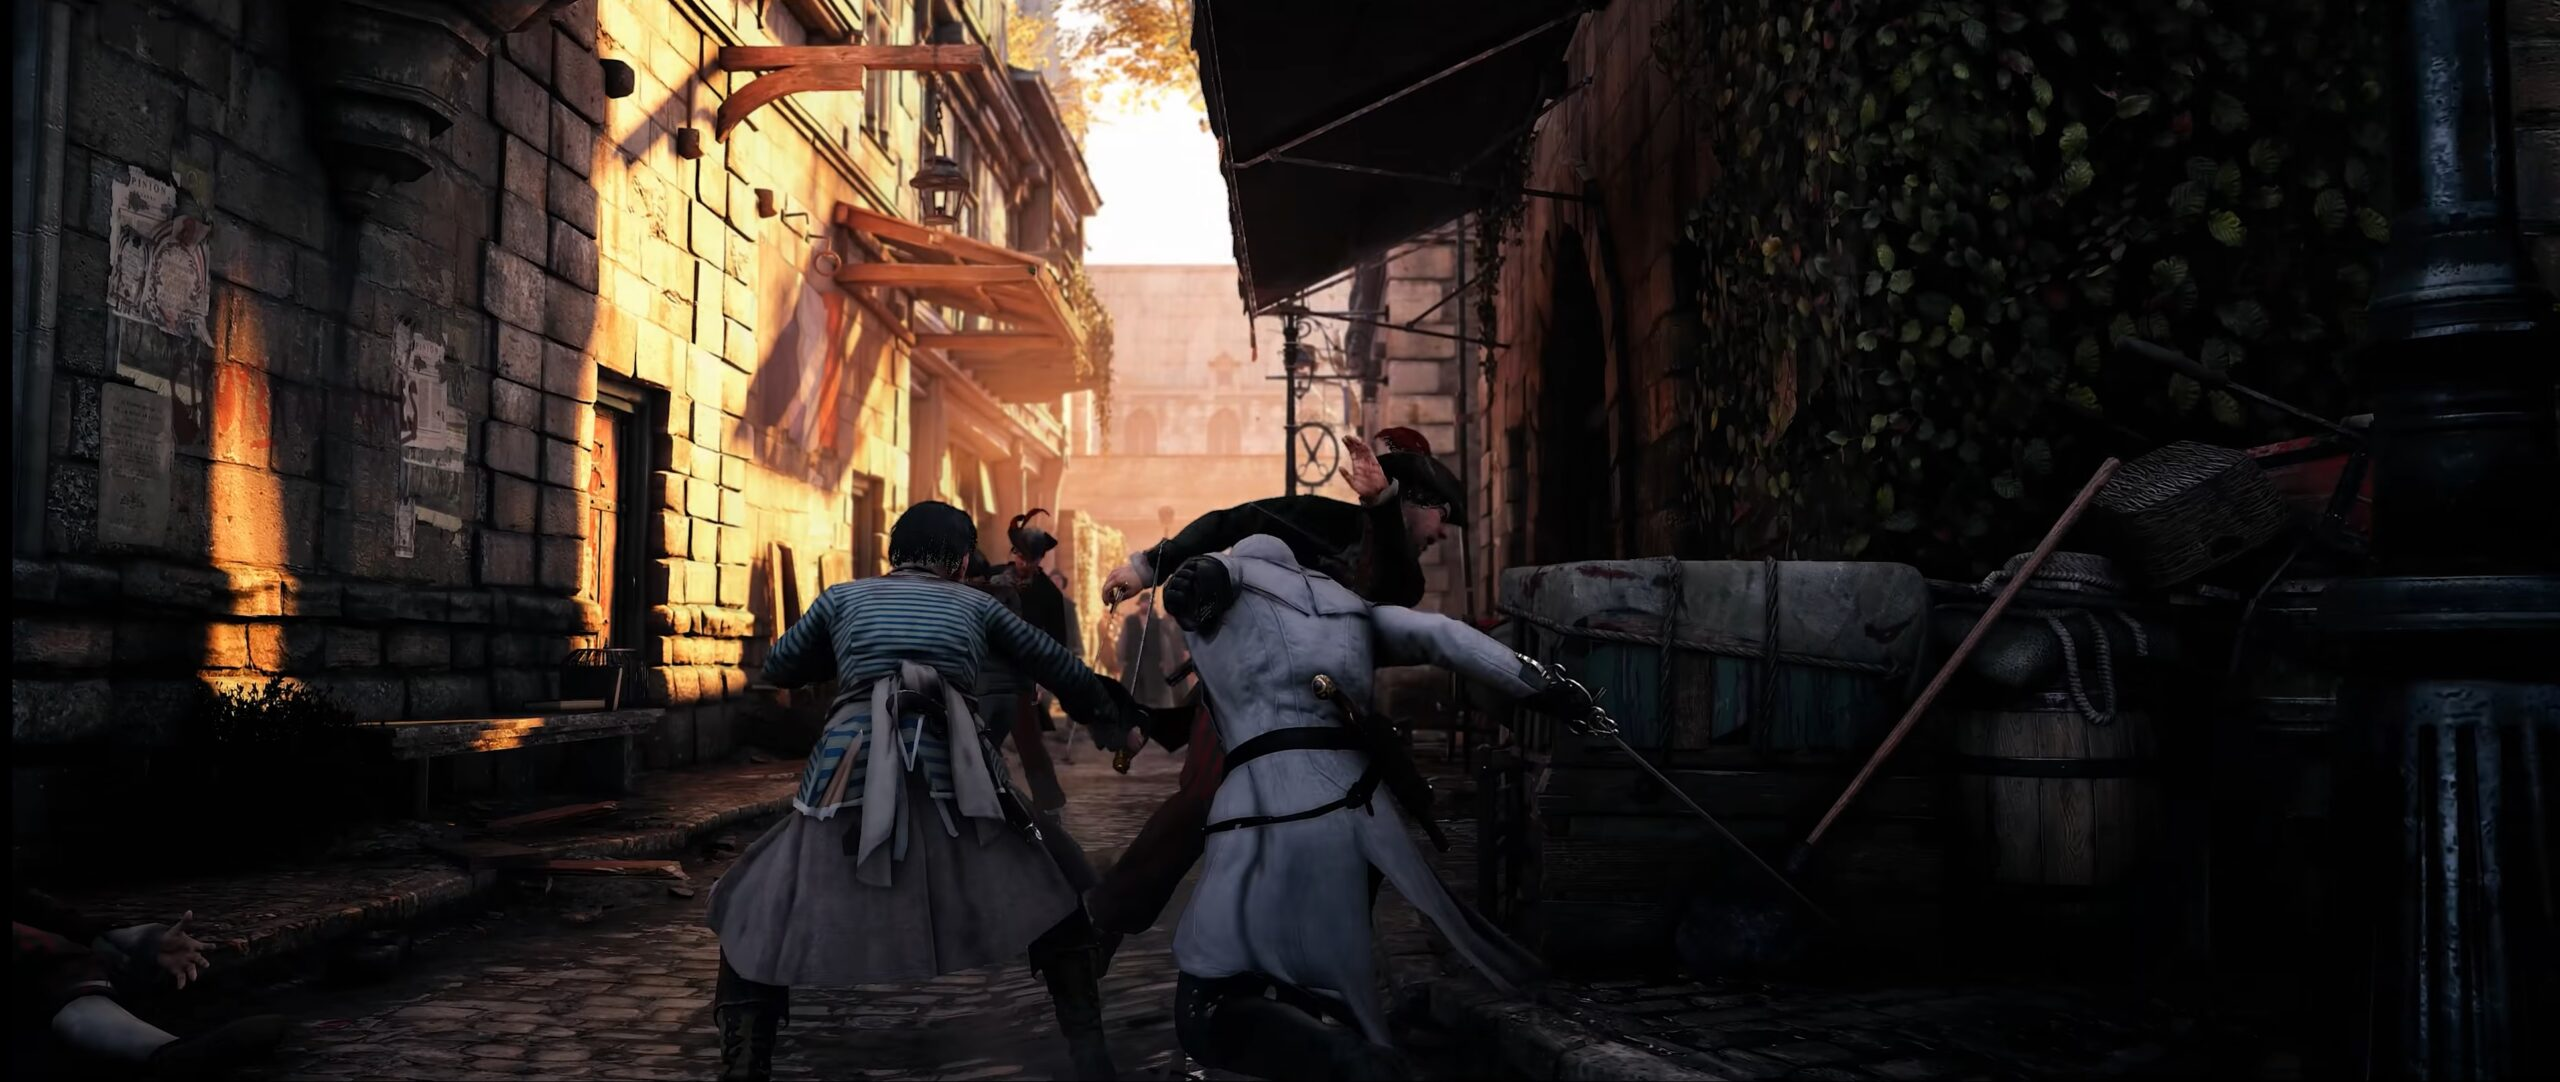 Assassin's Creed Unity Looks Like a Current Generation Game With ReShade Ray Tracing in New 8K Video